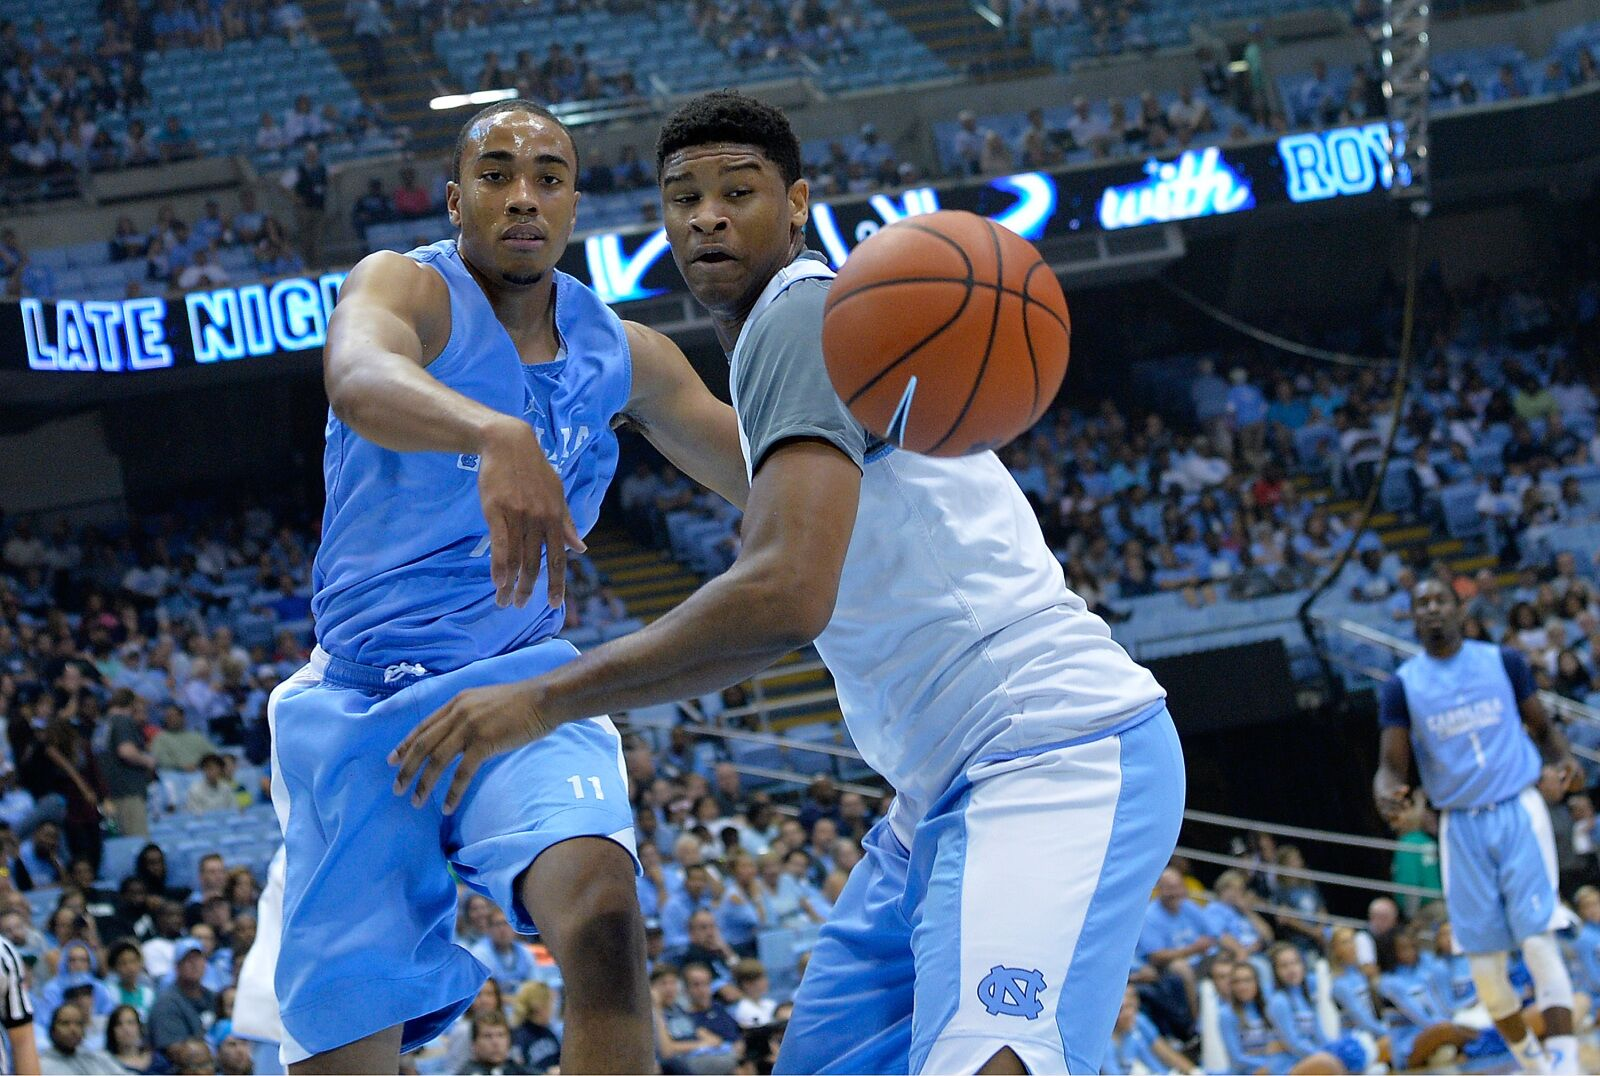 UNC in the NBA: Isaiah Hicks signs contract, Brice Johnson released